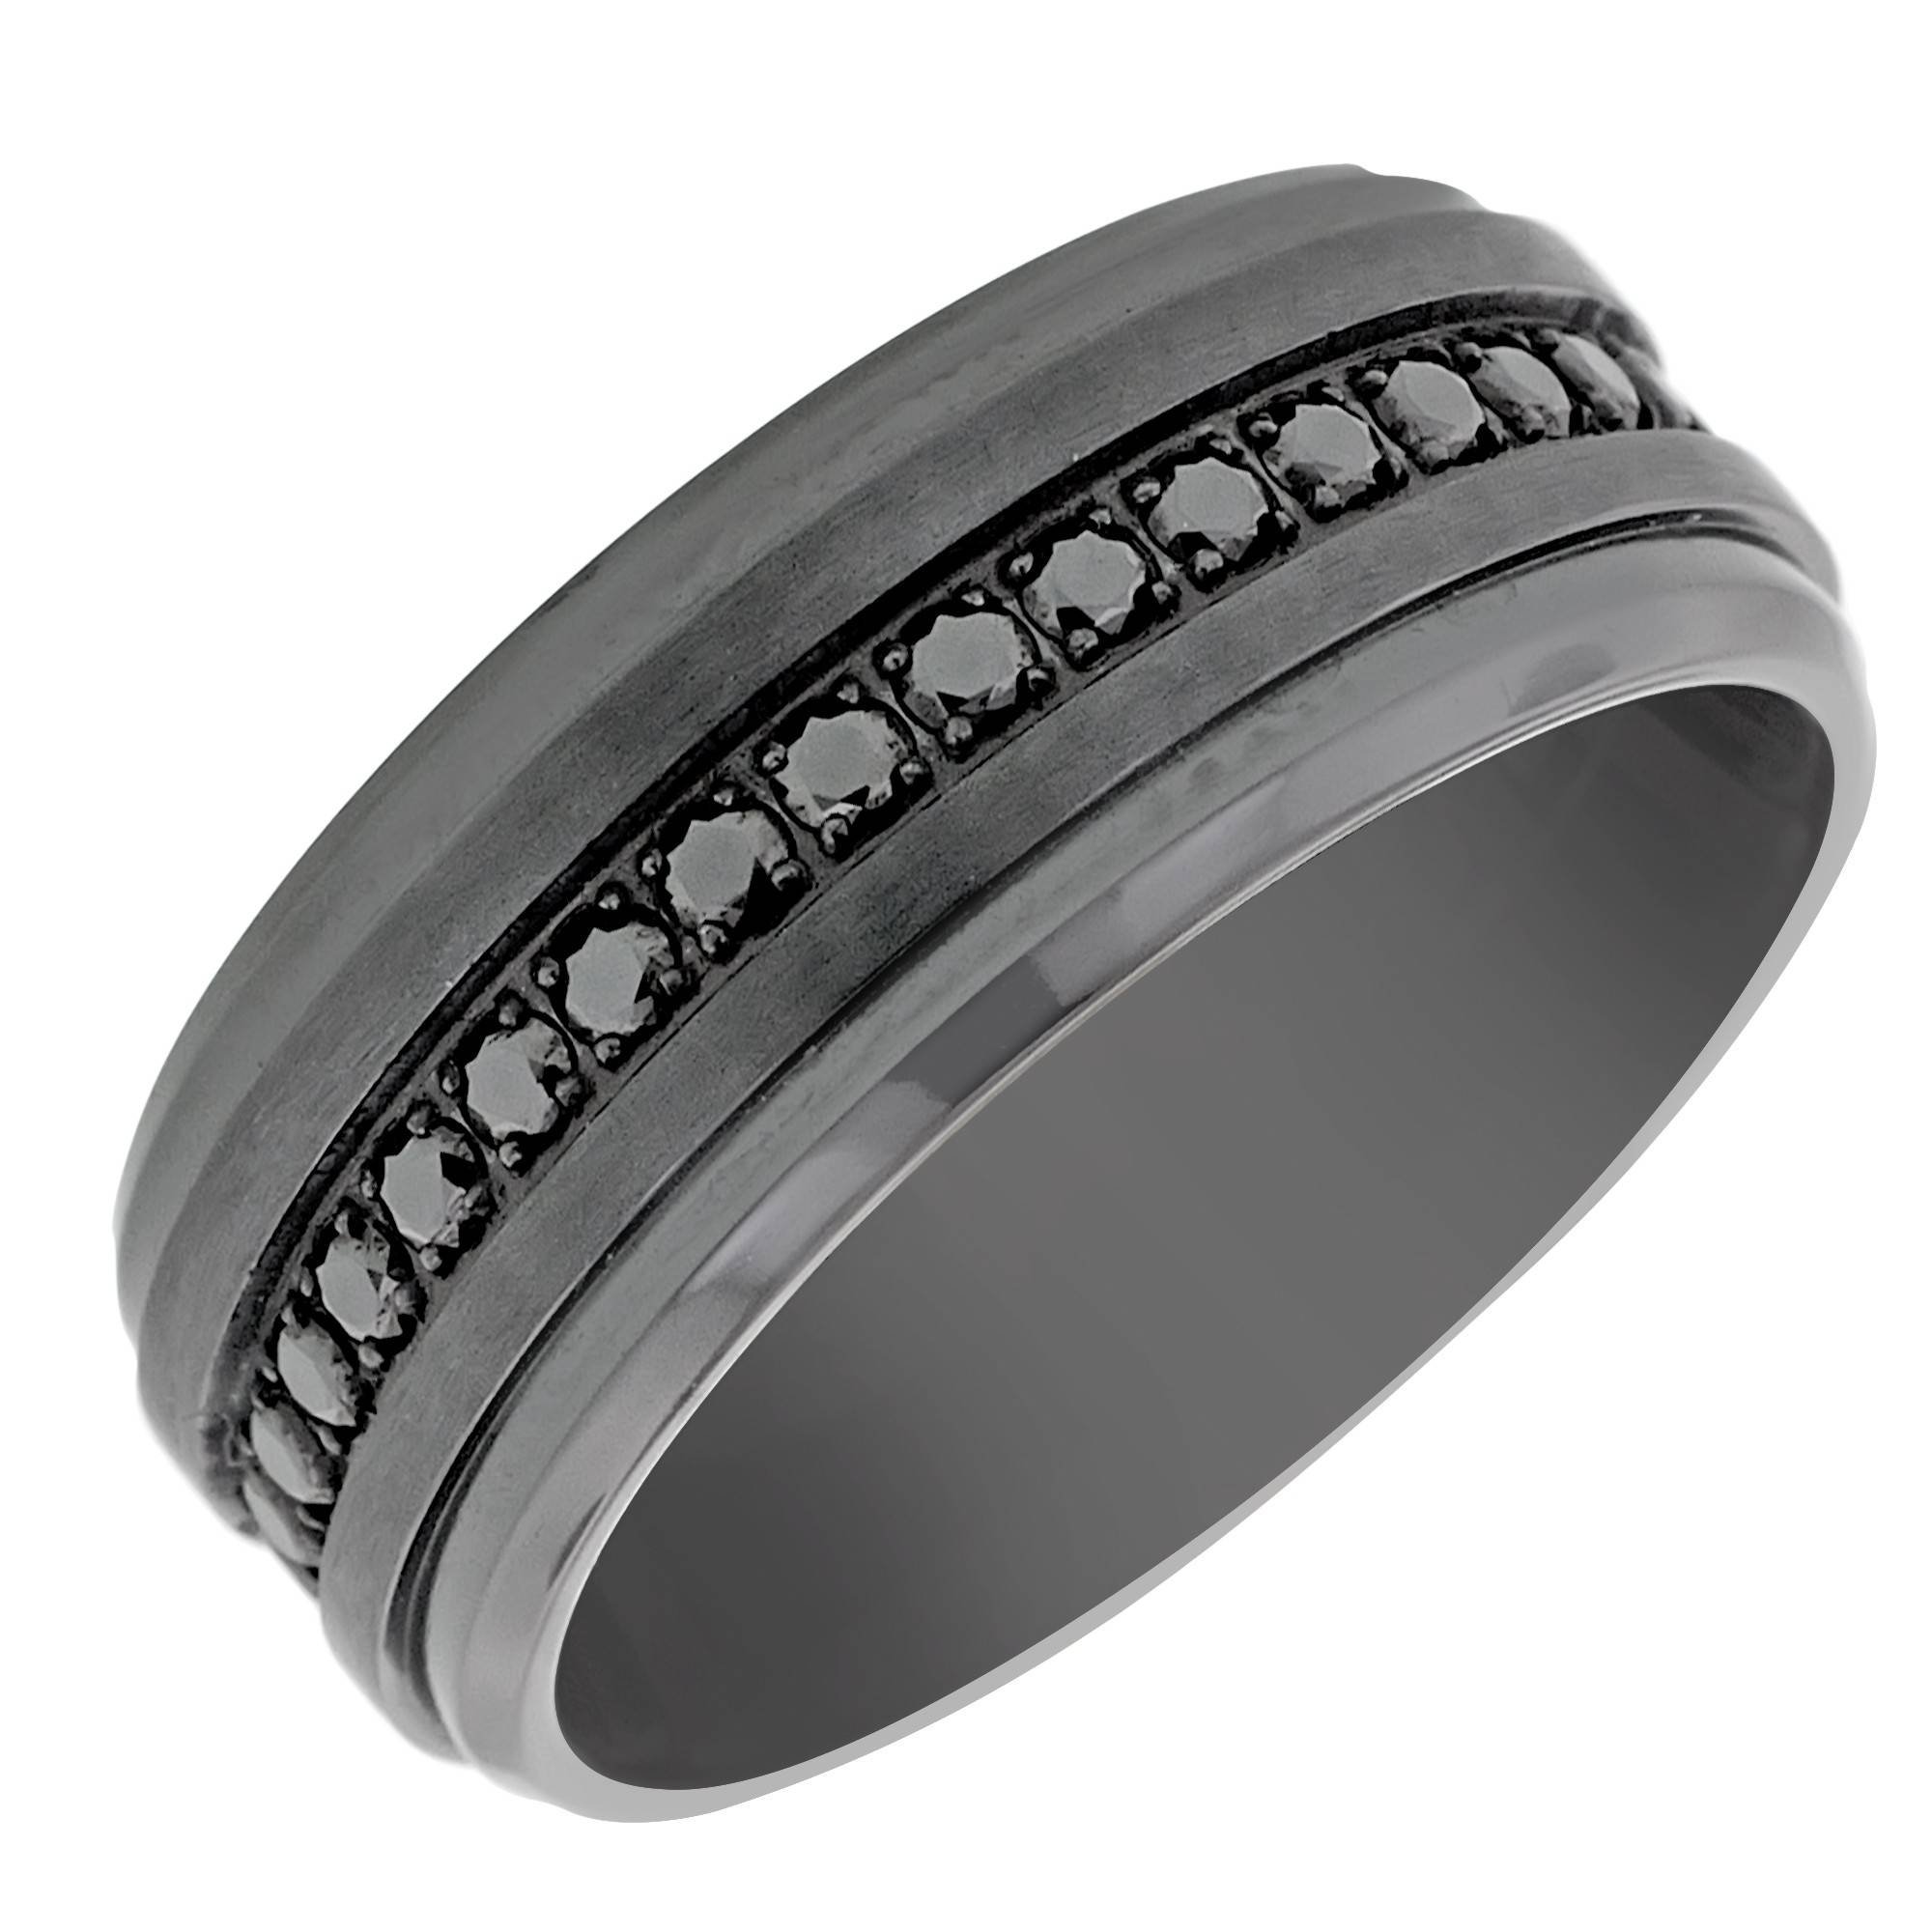 Benchmark Mens Black Cubic Zirconia Wedding Band In Black Titanium Inside Men's Titanium Wedding Bands With Diamonds (View 1 of 15)